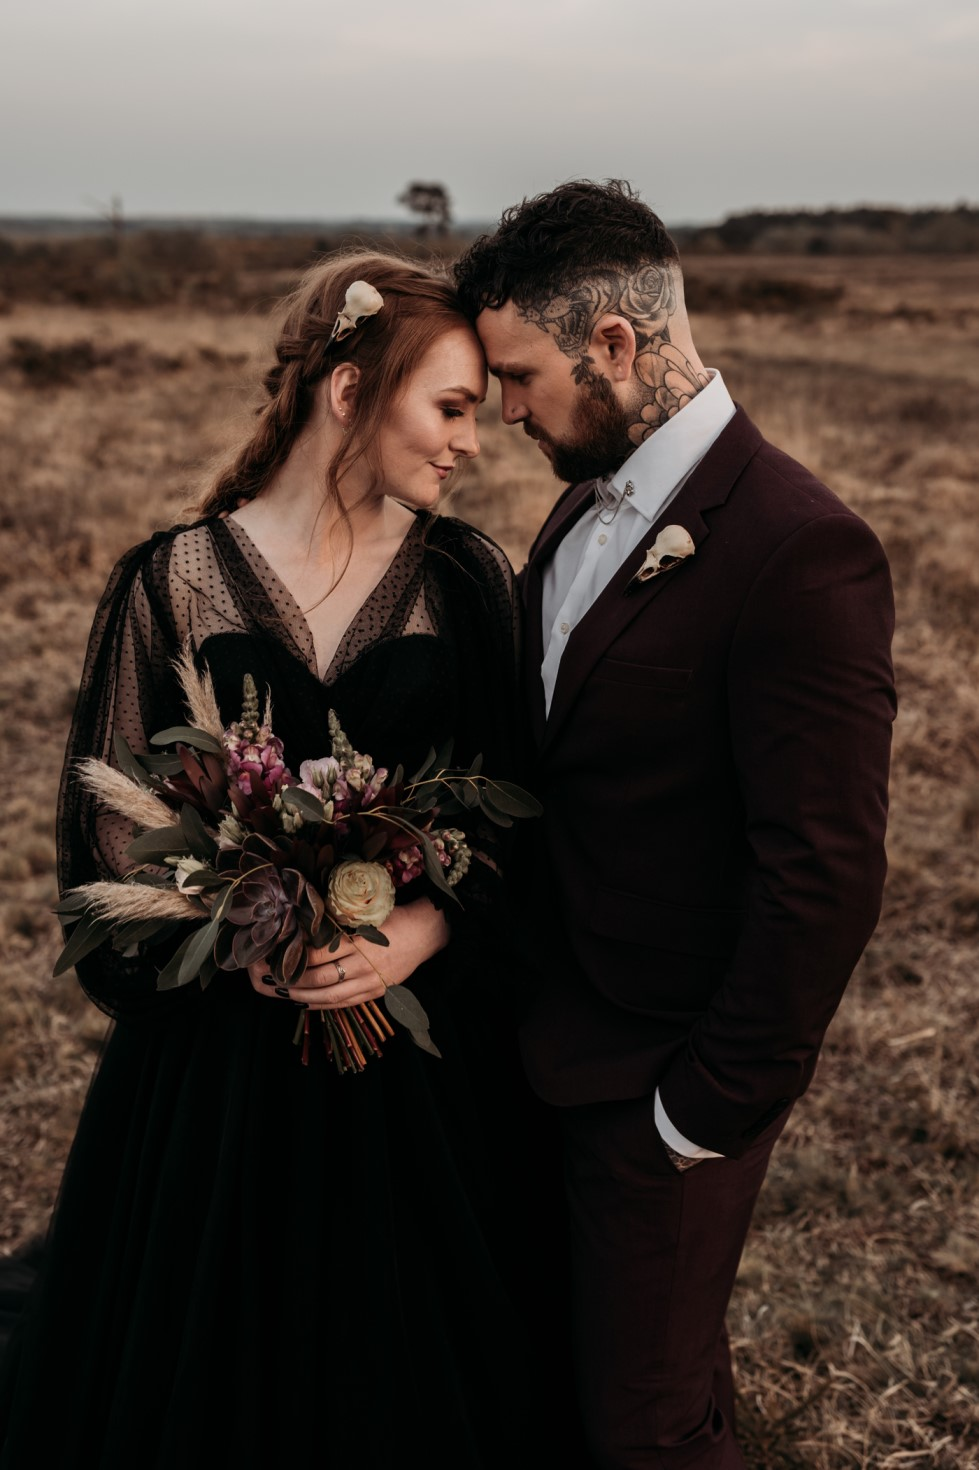 Finn And The Fox Photography-Moody Elopement Wedding- Unconventional Wedding-Edgy Wedding- Unique Wedding - Gothic wedding 2